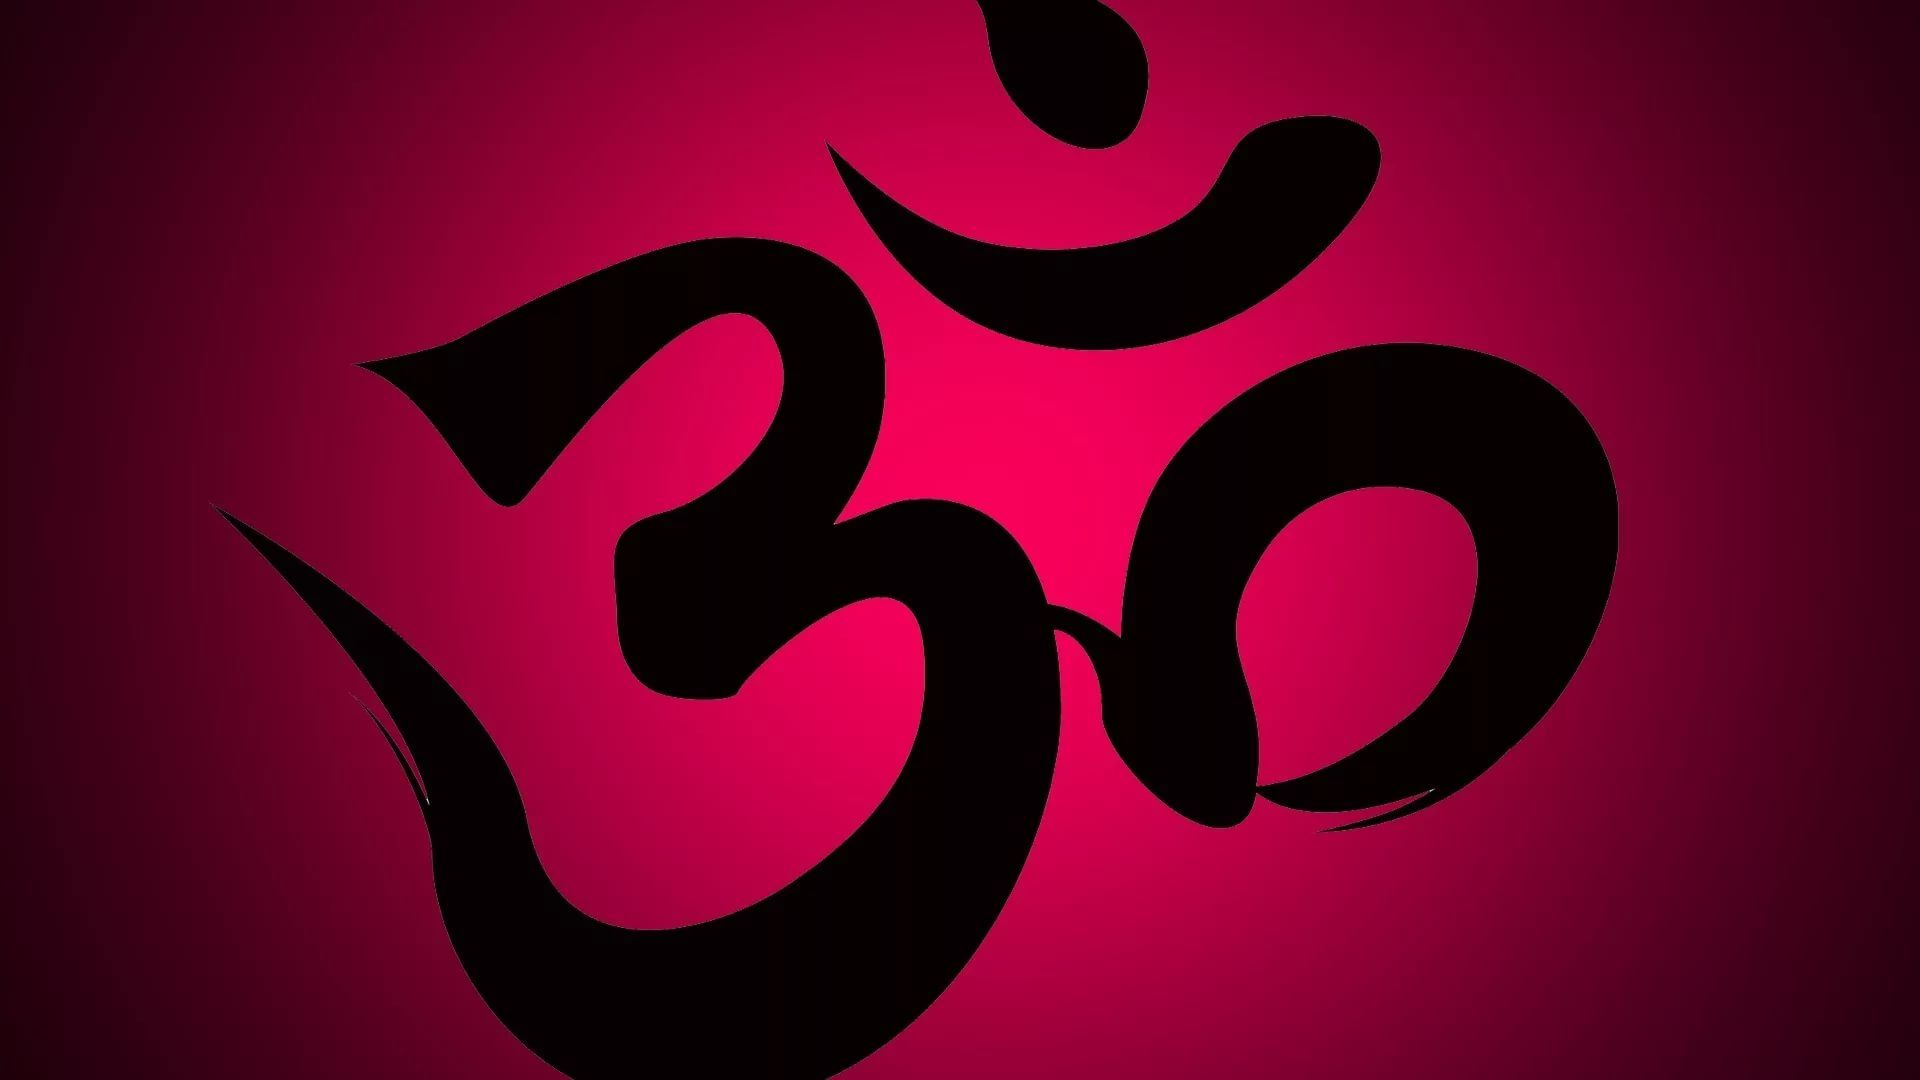 Om download free wallpaper image search